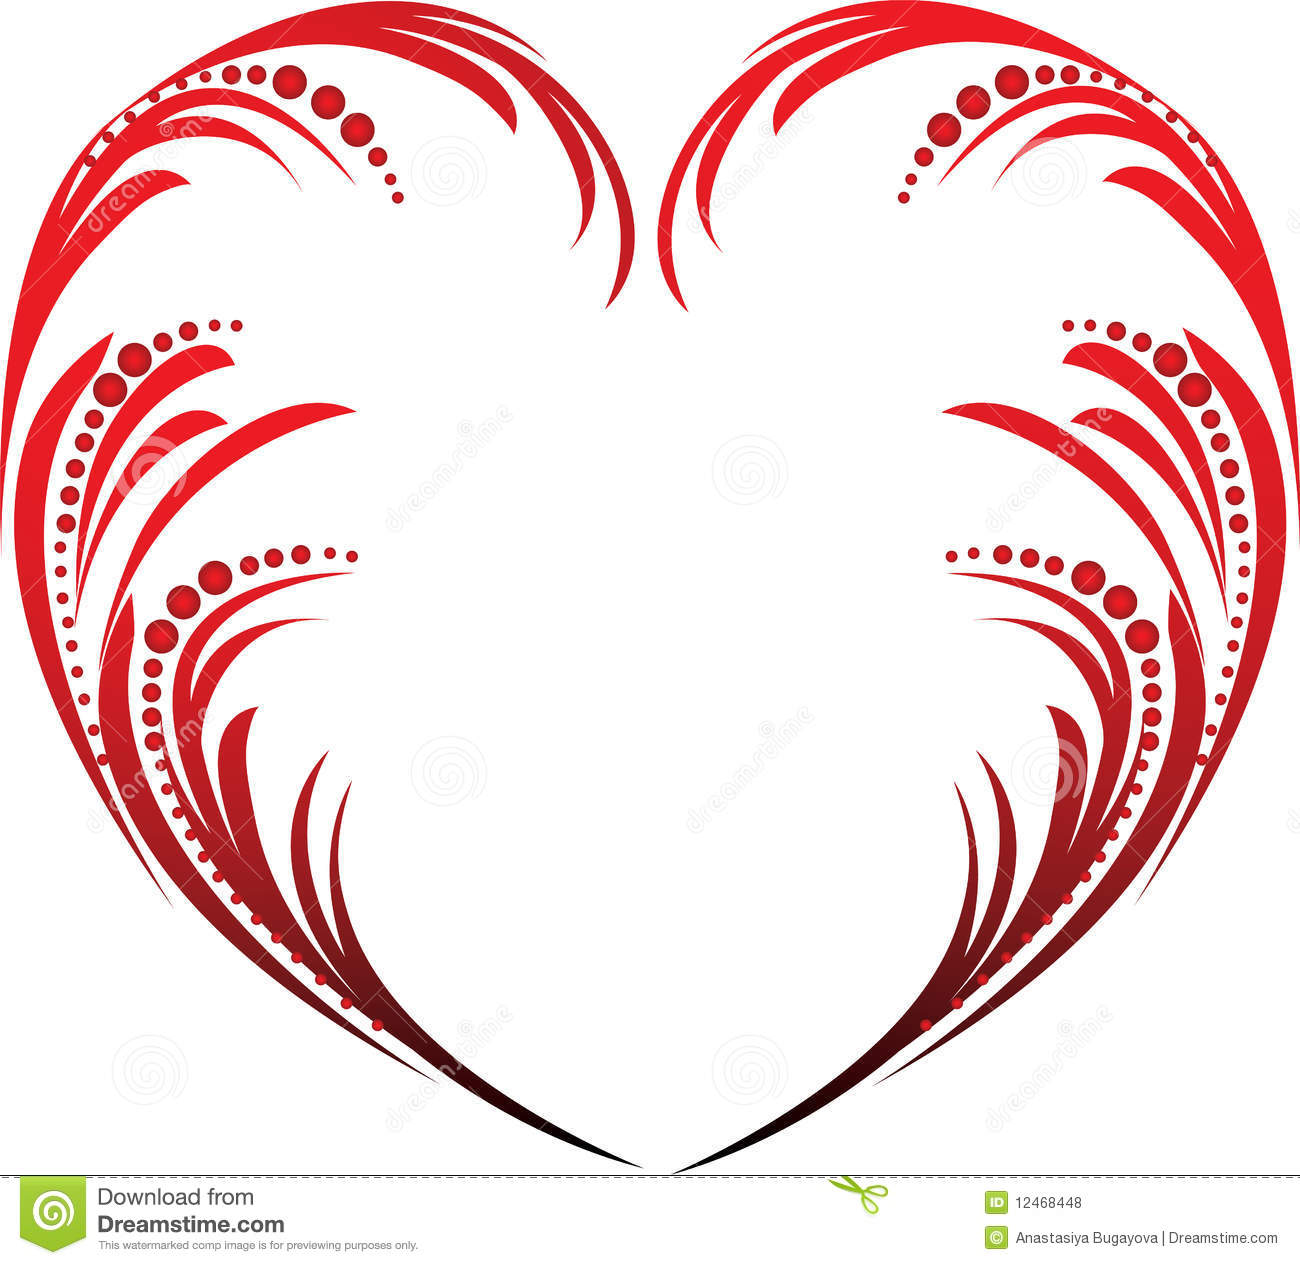 Valentines Heart Royalty Free Stock Photos - Image: 12468448